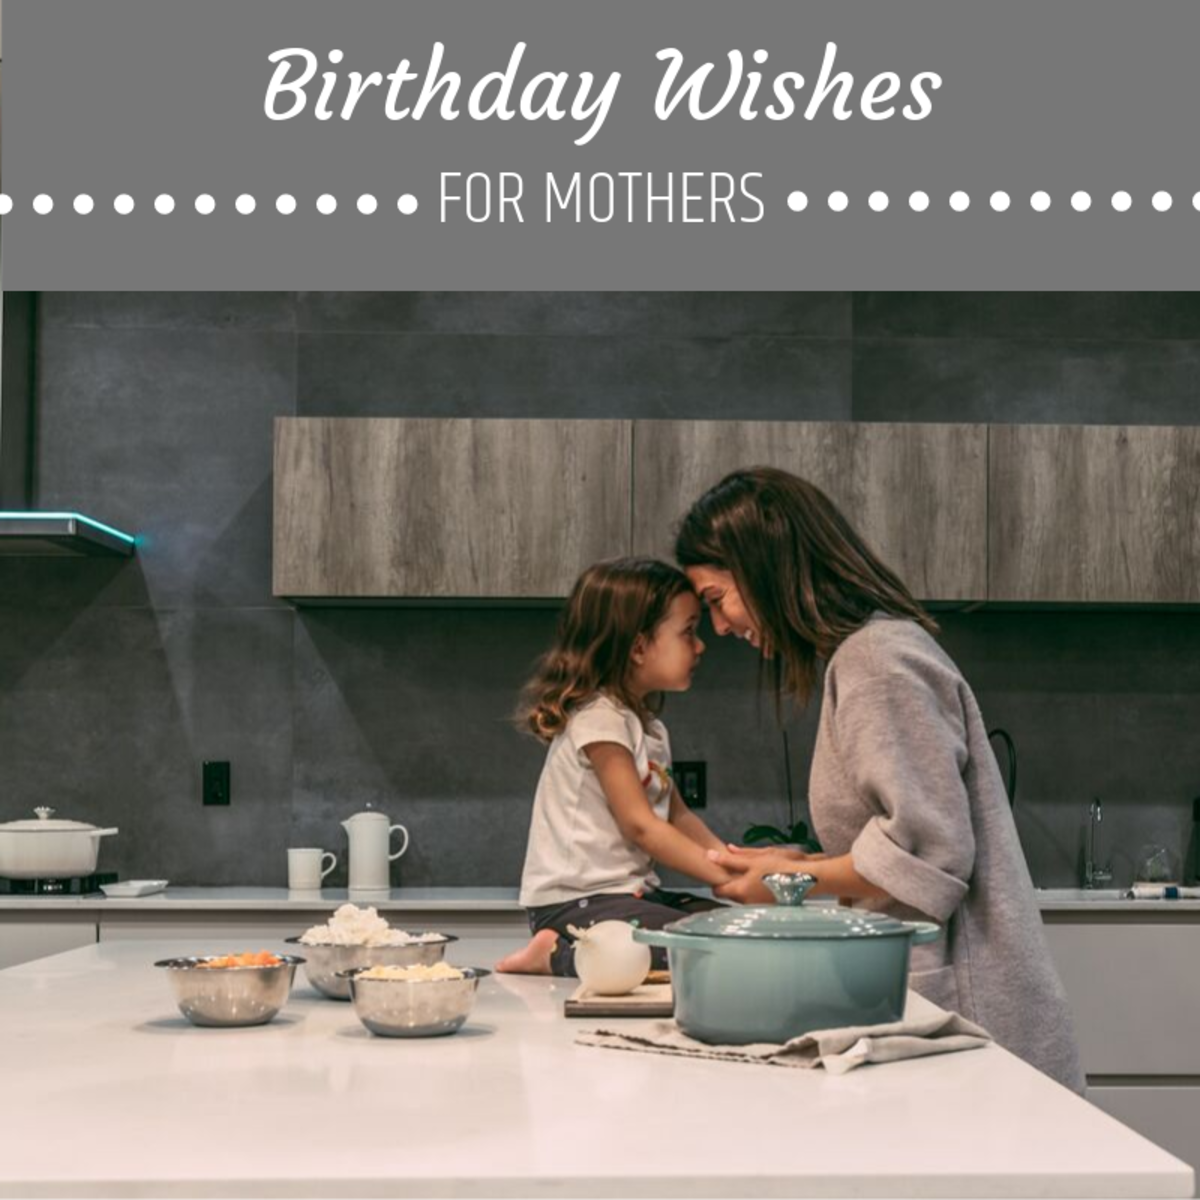 Moms are among the most important figures in our lives. They deserve awesome birthday messages!